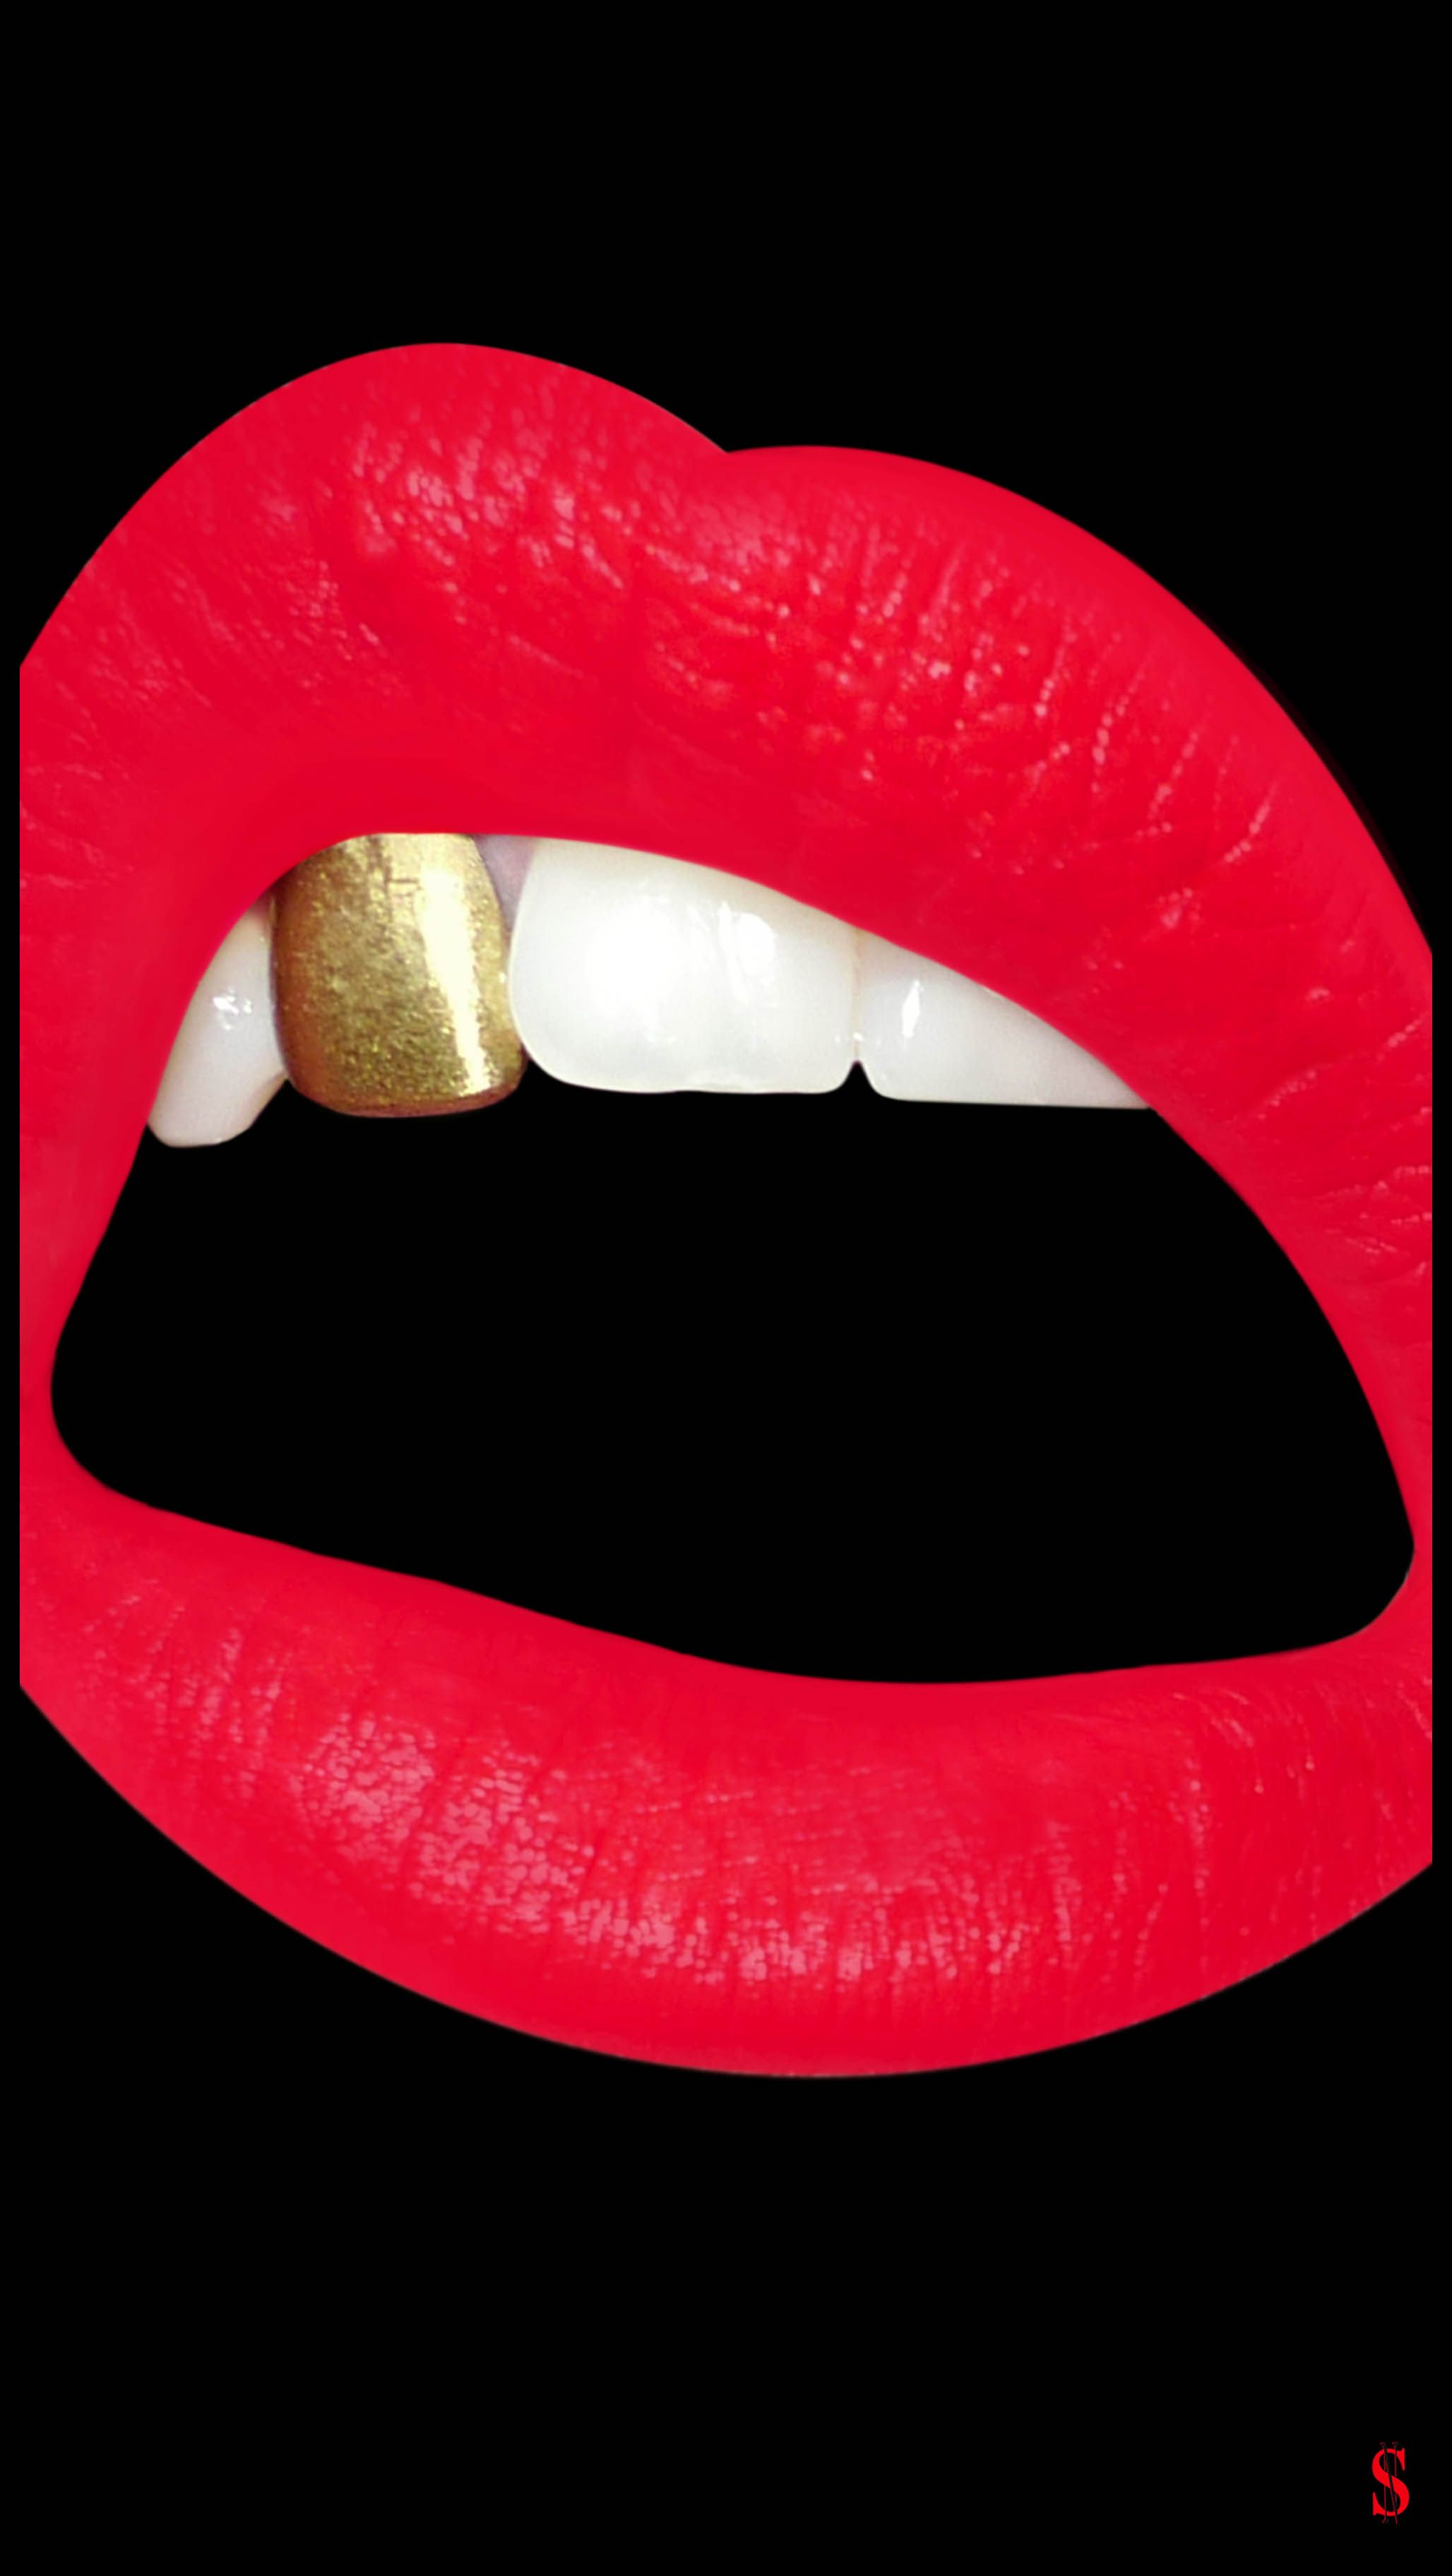 Enhanced By Art And Science Girly Photography Grillz Gold Grill